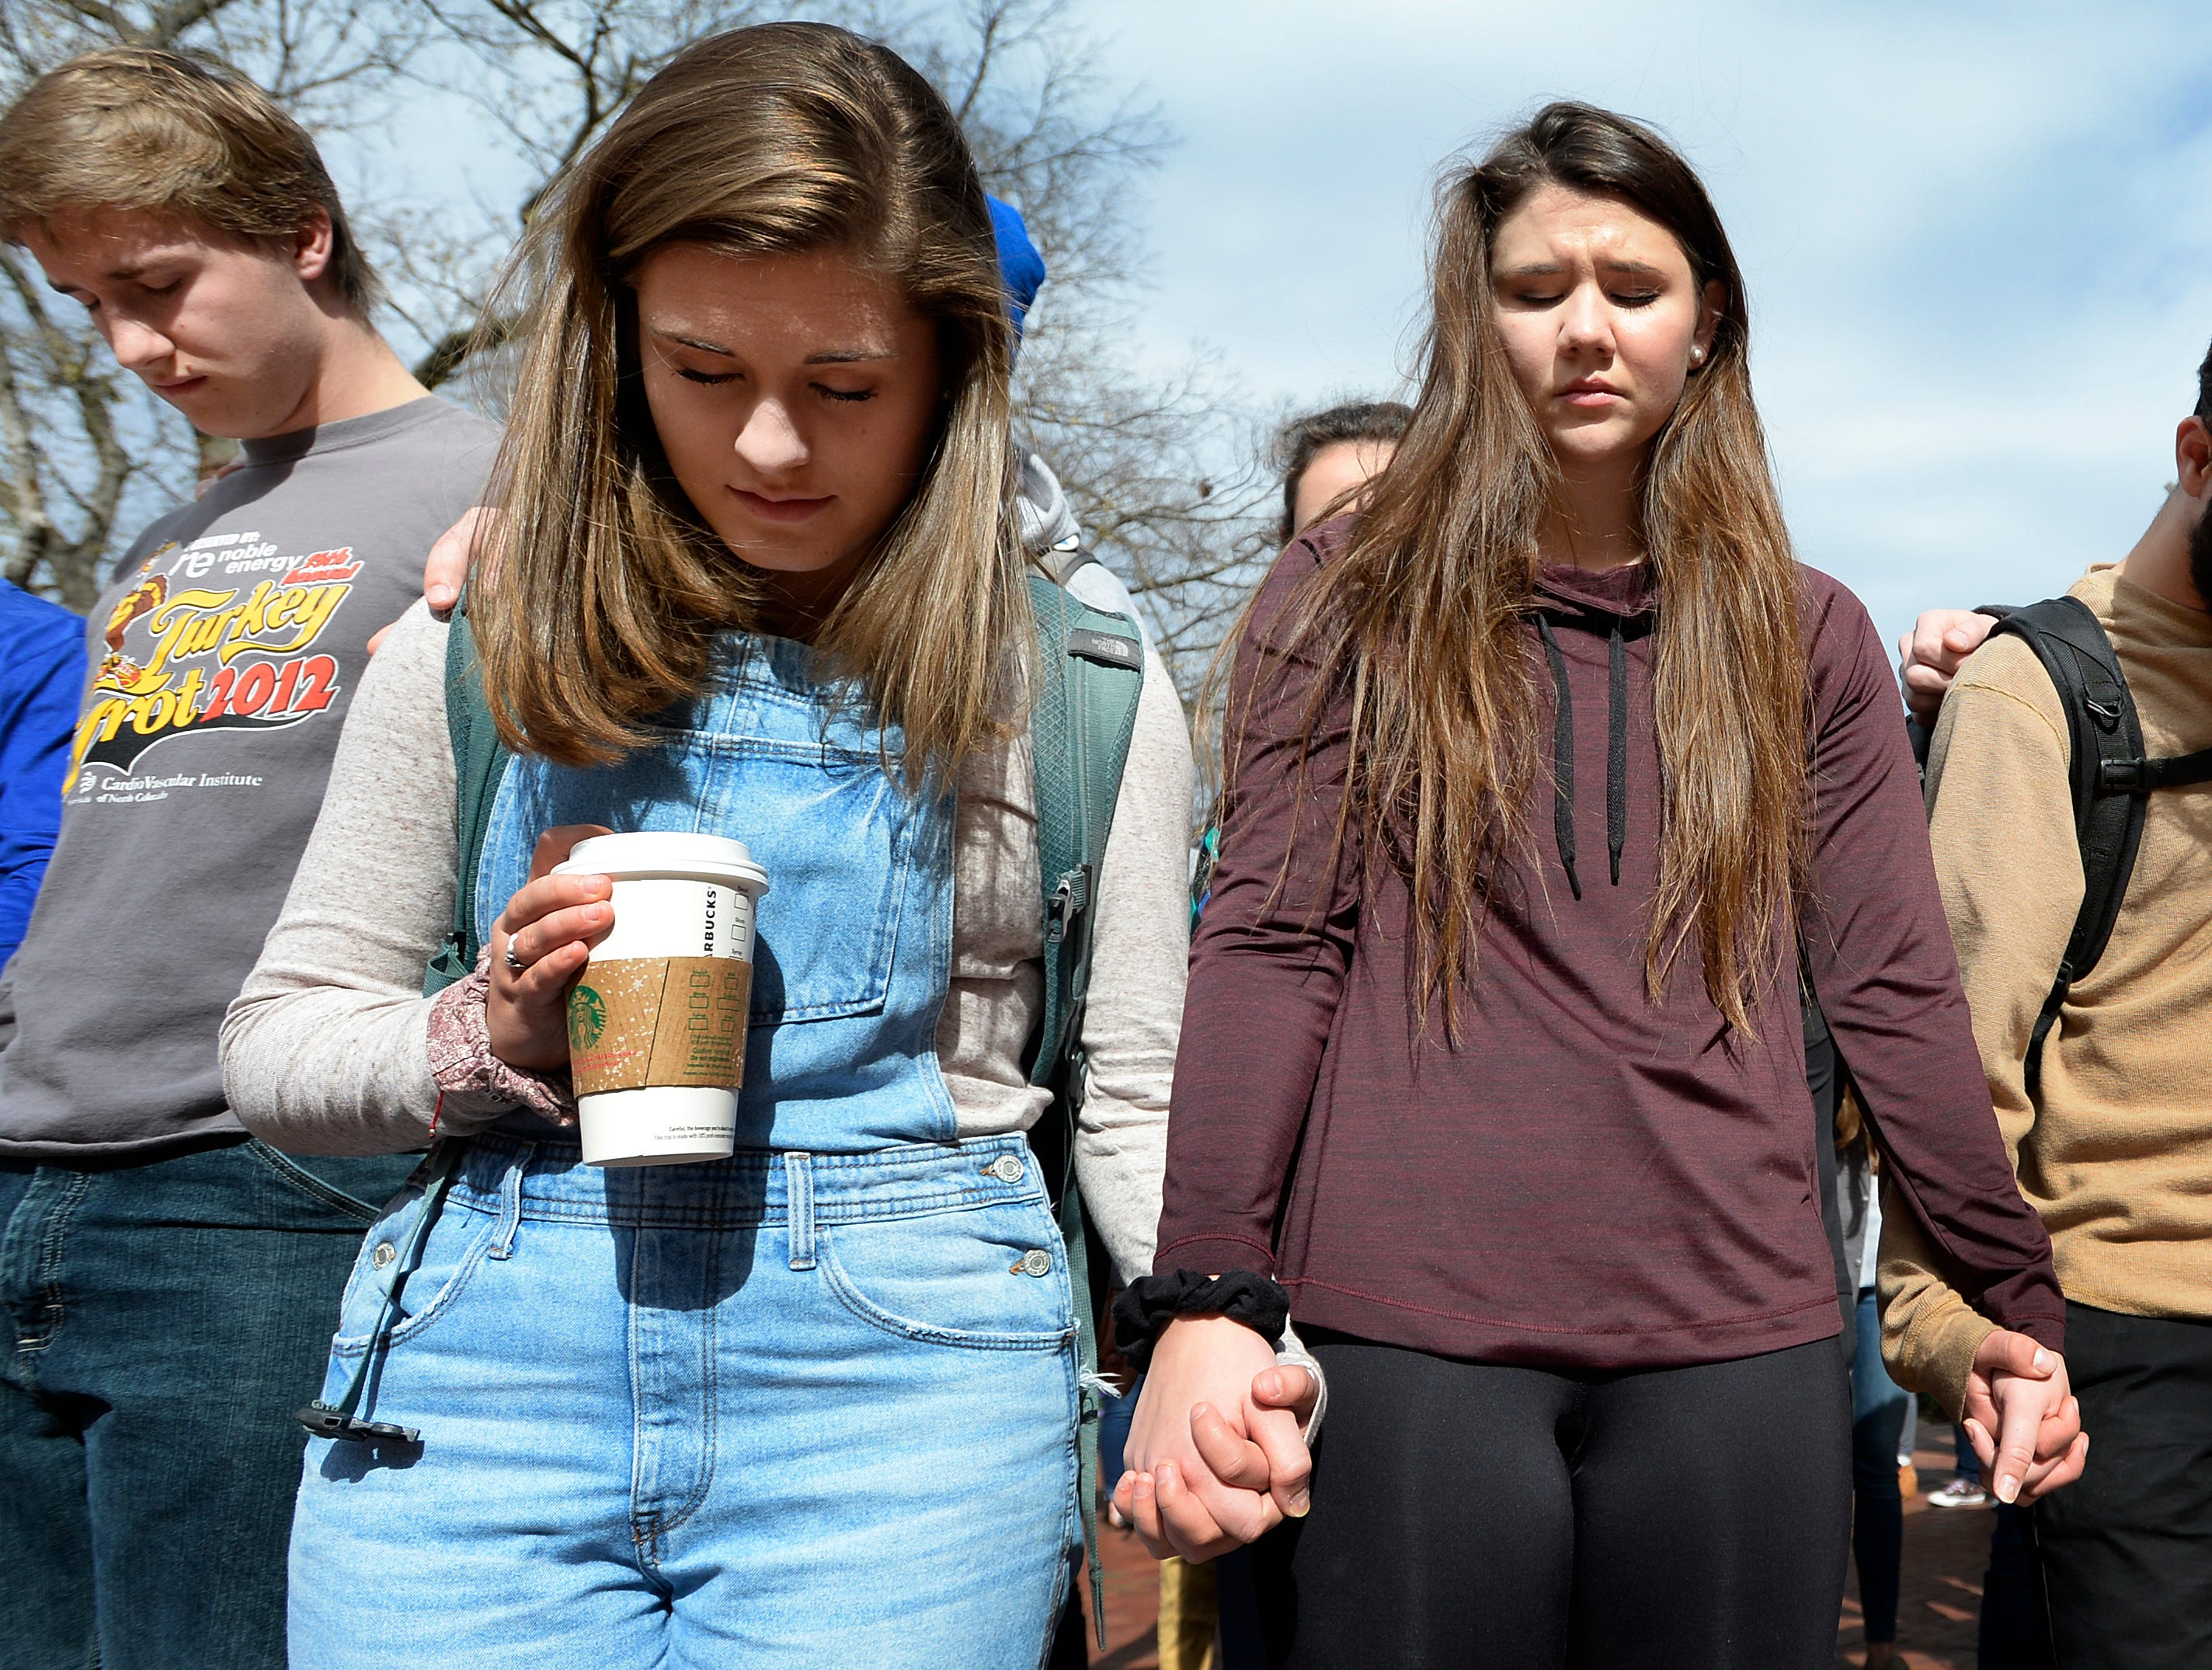 Students spend a moment in silence during a  prayer service at Lipscomb University on Thursday, Nov. 8, 2018, in Nashville, Tenn. The event honored the 12 victims of a mass shooting at a bar Wednesday night in Southern California. College students from Pepperdine University were in the bar at the time of the shooting. Both Pepperdine and Lipscomb are affiliated with the Churches is Christ.